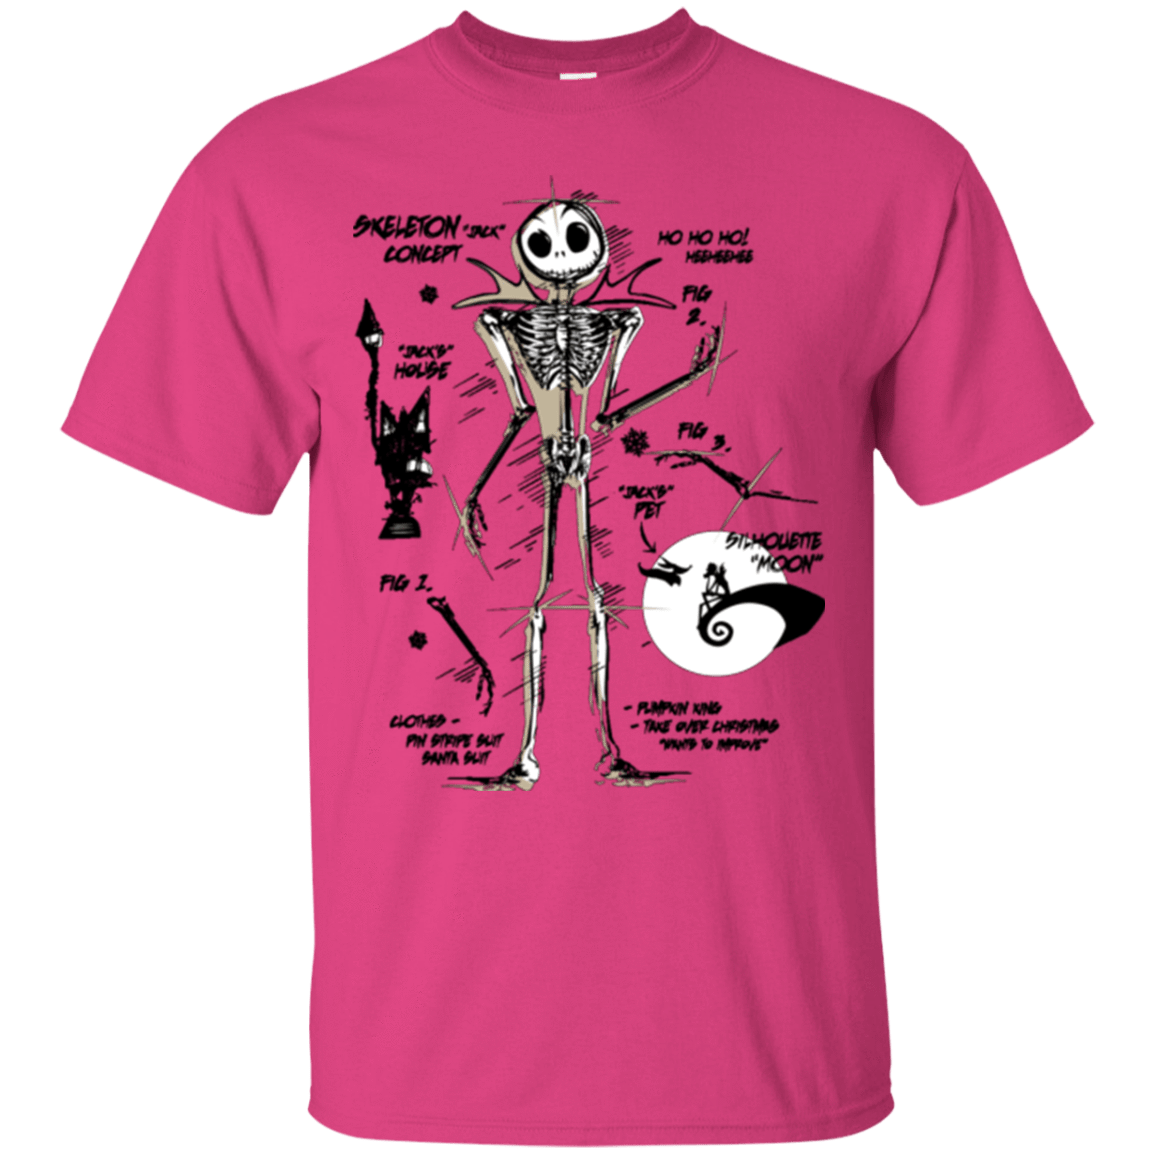 Skeleton Concept T-Shirt